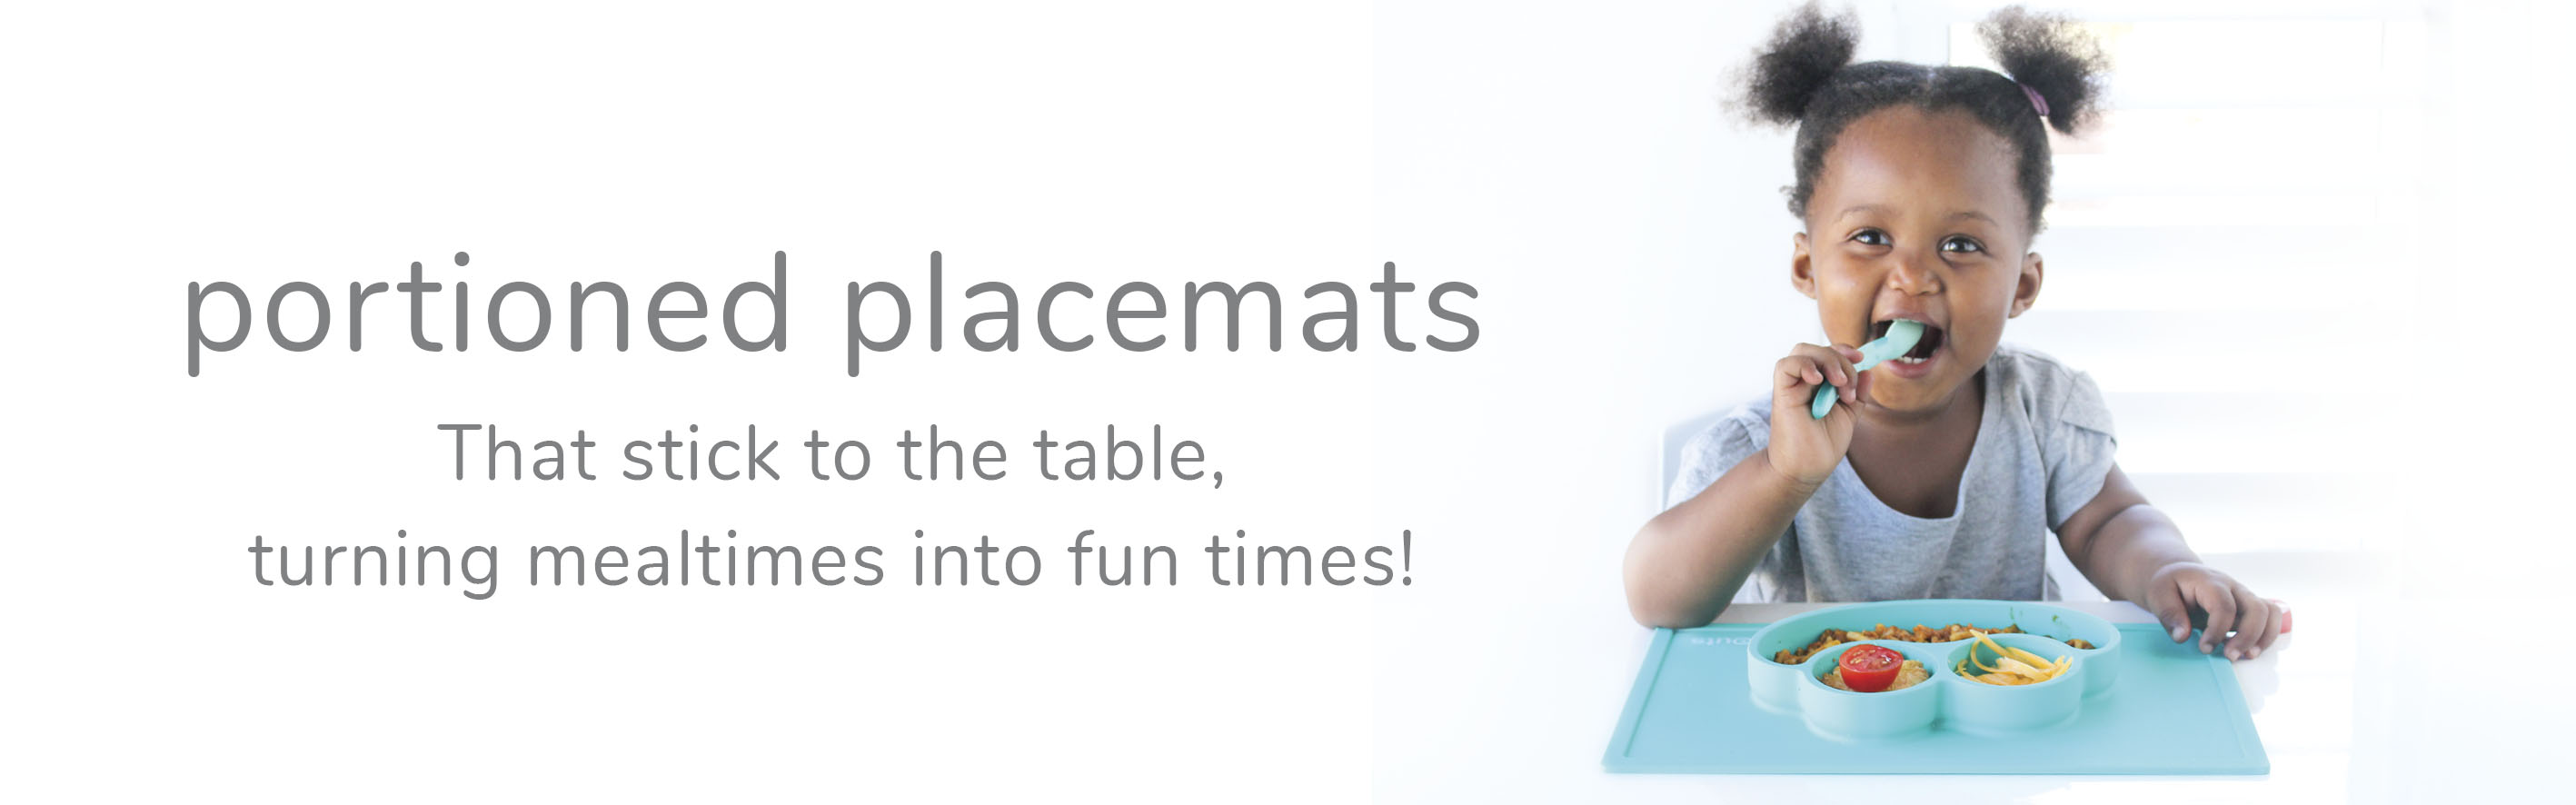 Banners_FEEDING_Placemat_V3